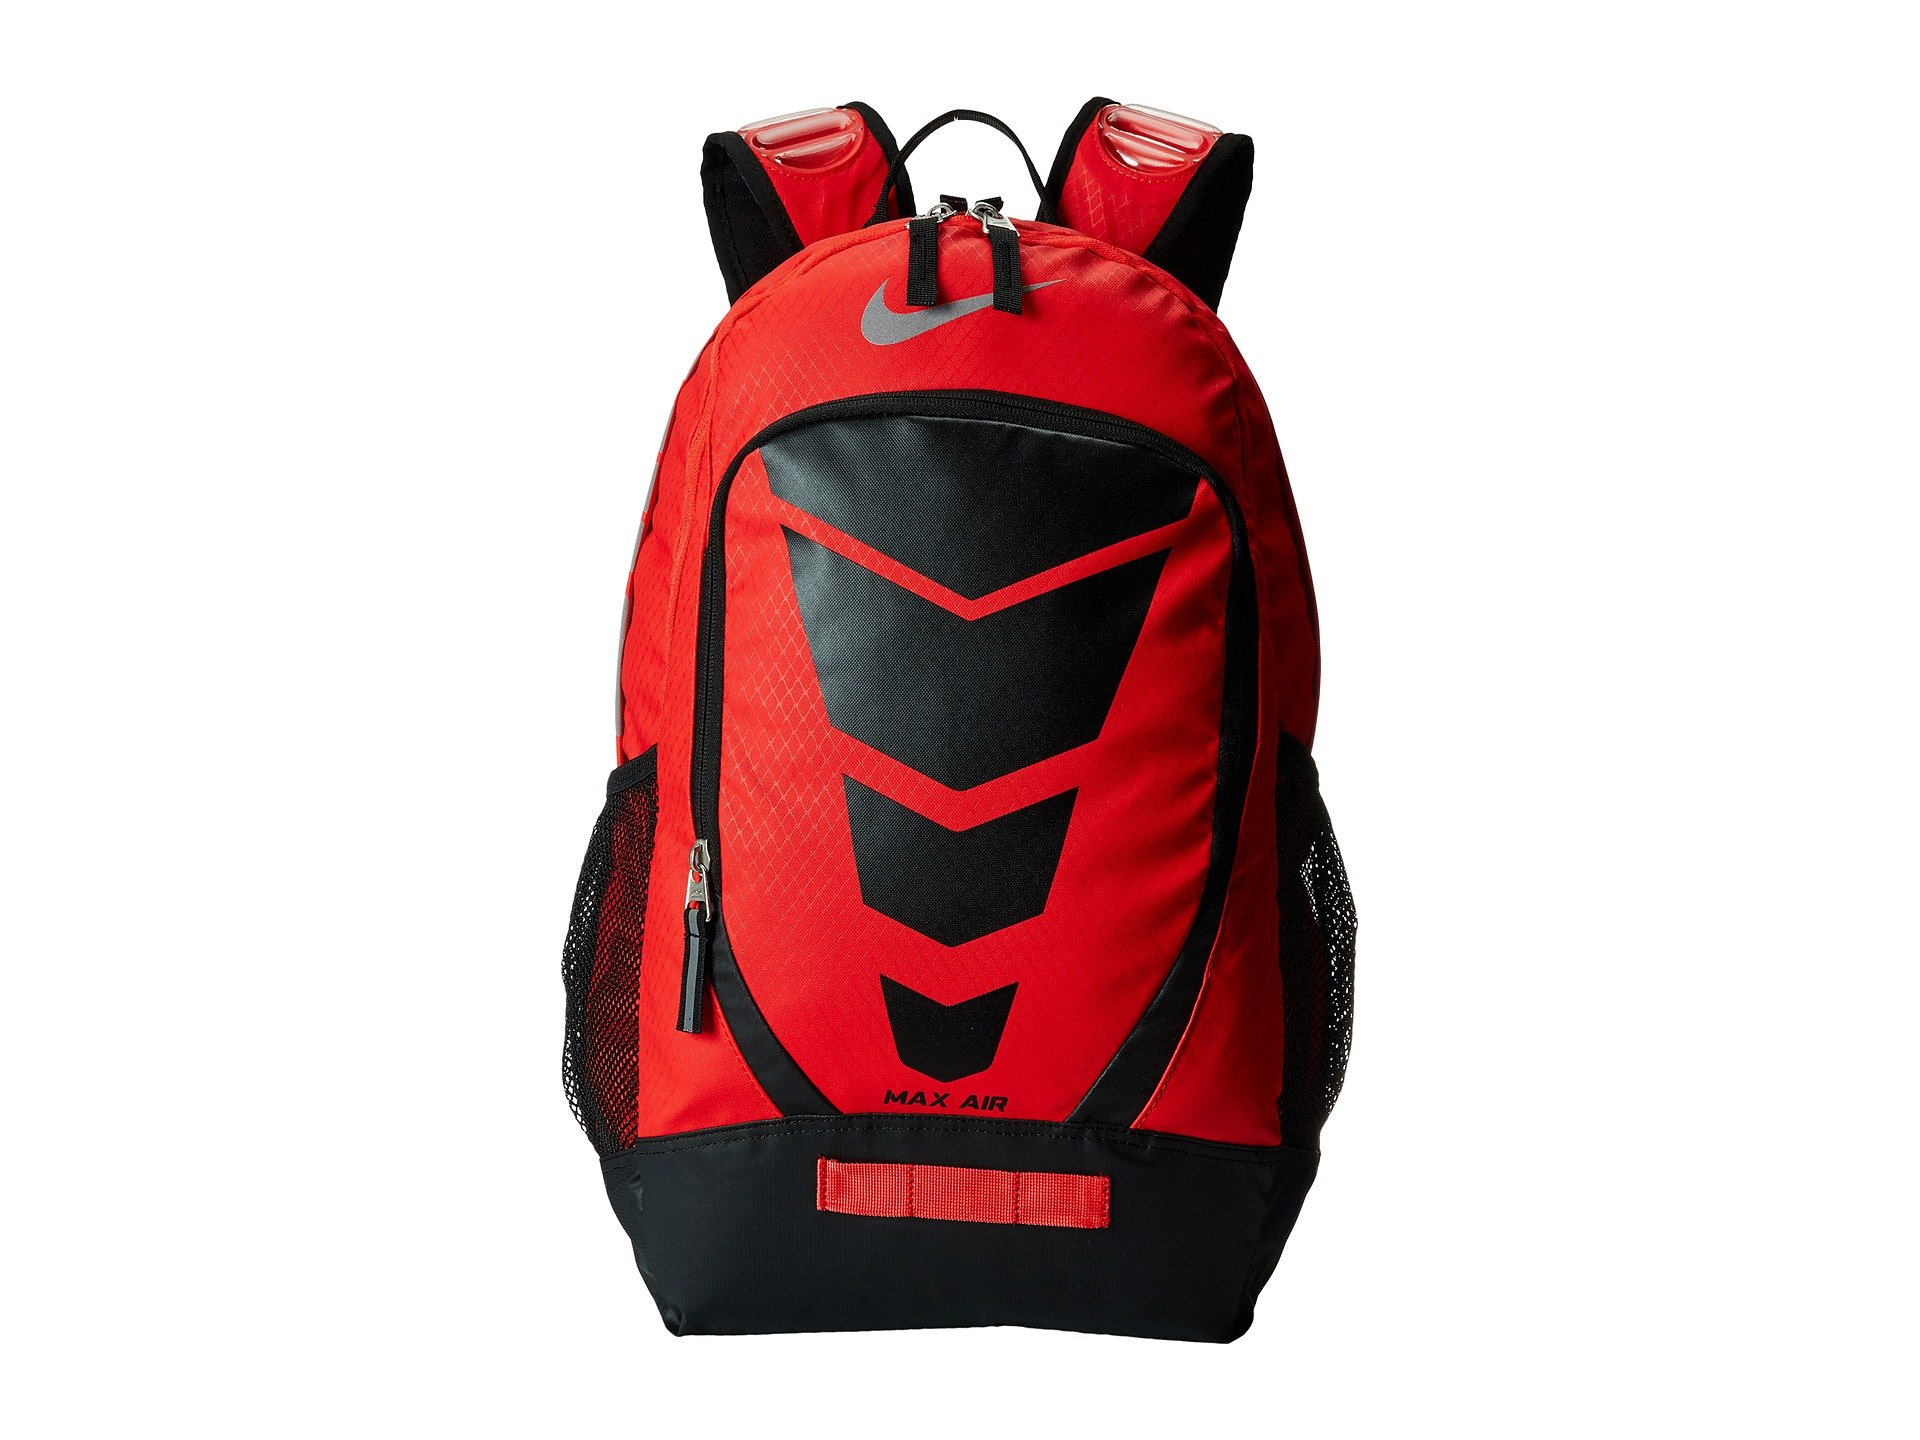 ffc95d7e7b8 Nike Max Air Vapor Backpack in Red for Men - Lyst